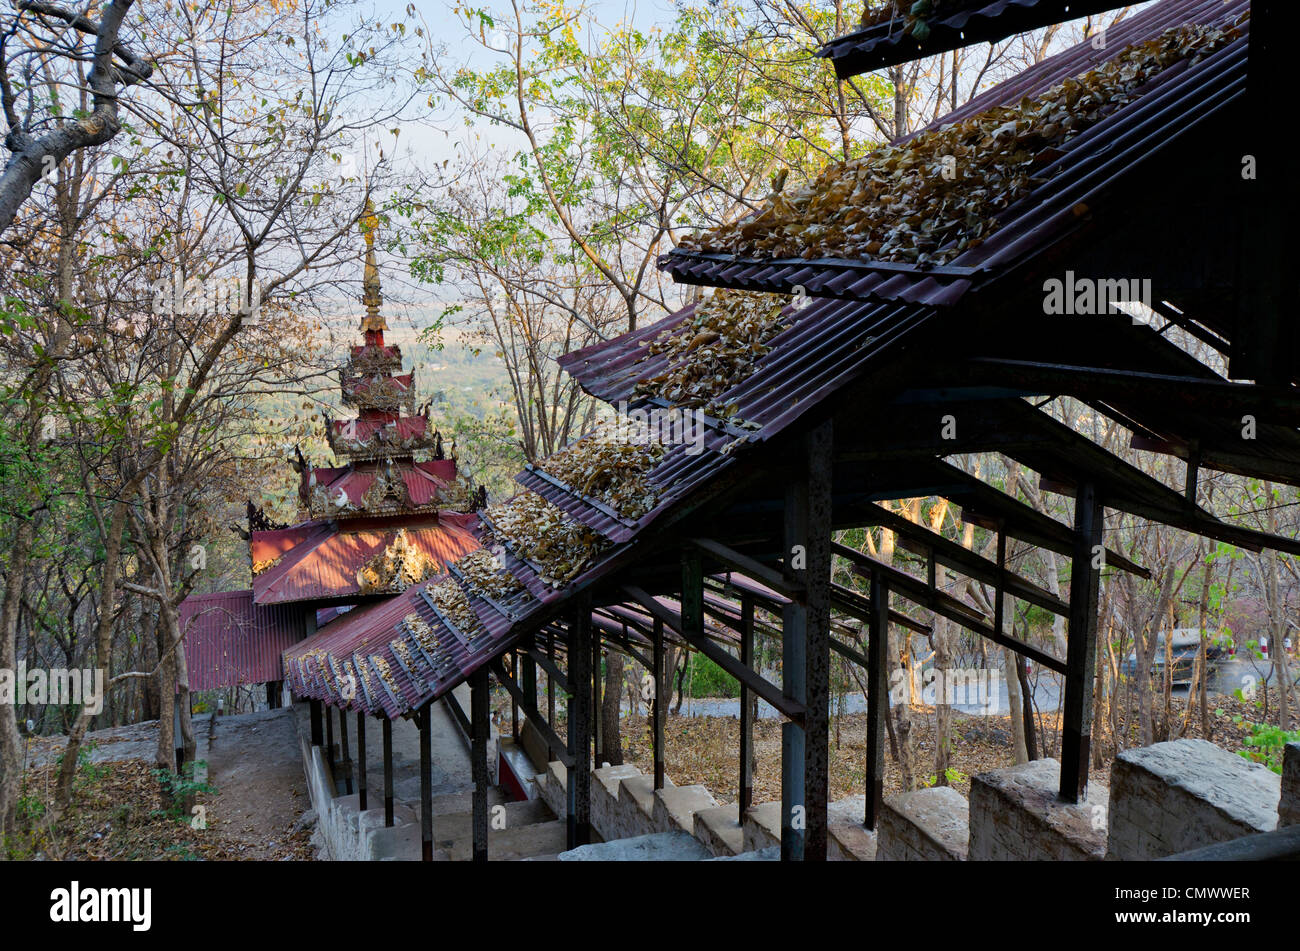 Corrugated metal roved temple leading up Mandalay Hill, Mandalay, Myanmar - Stock Image